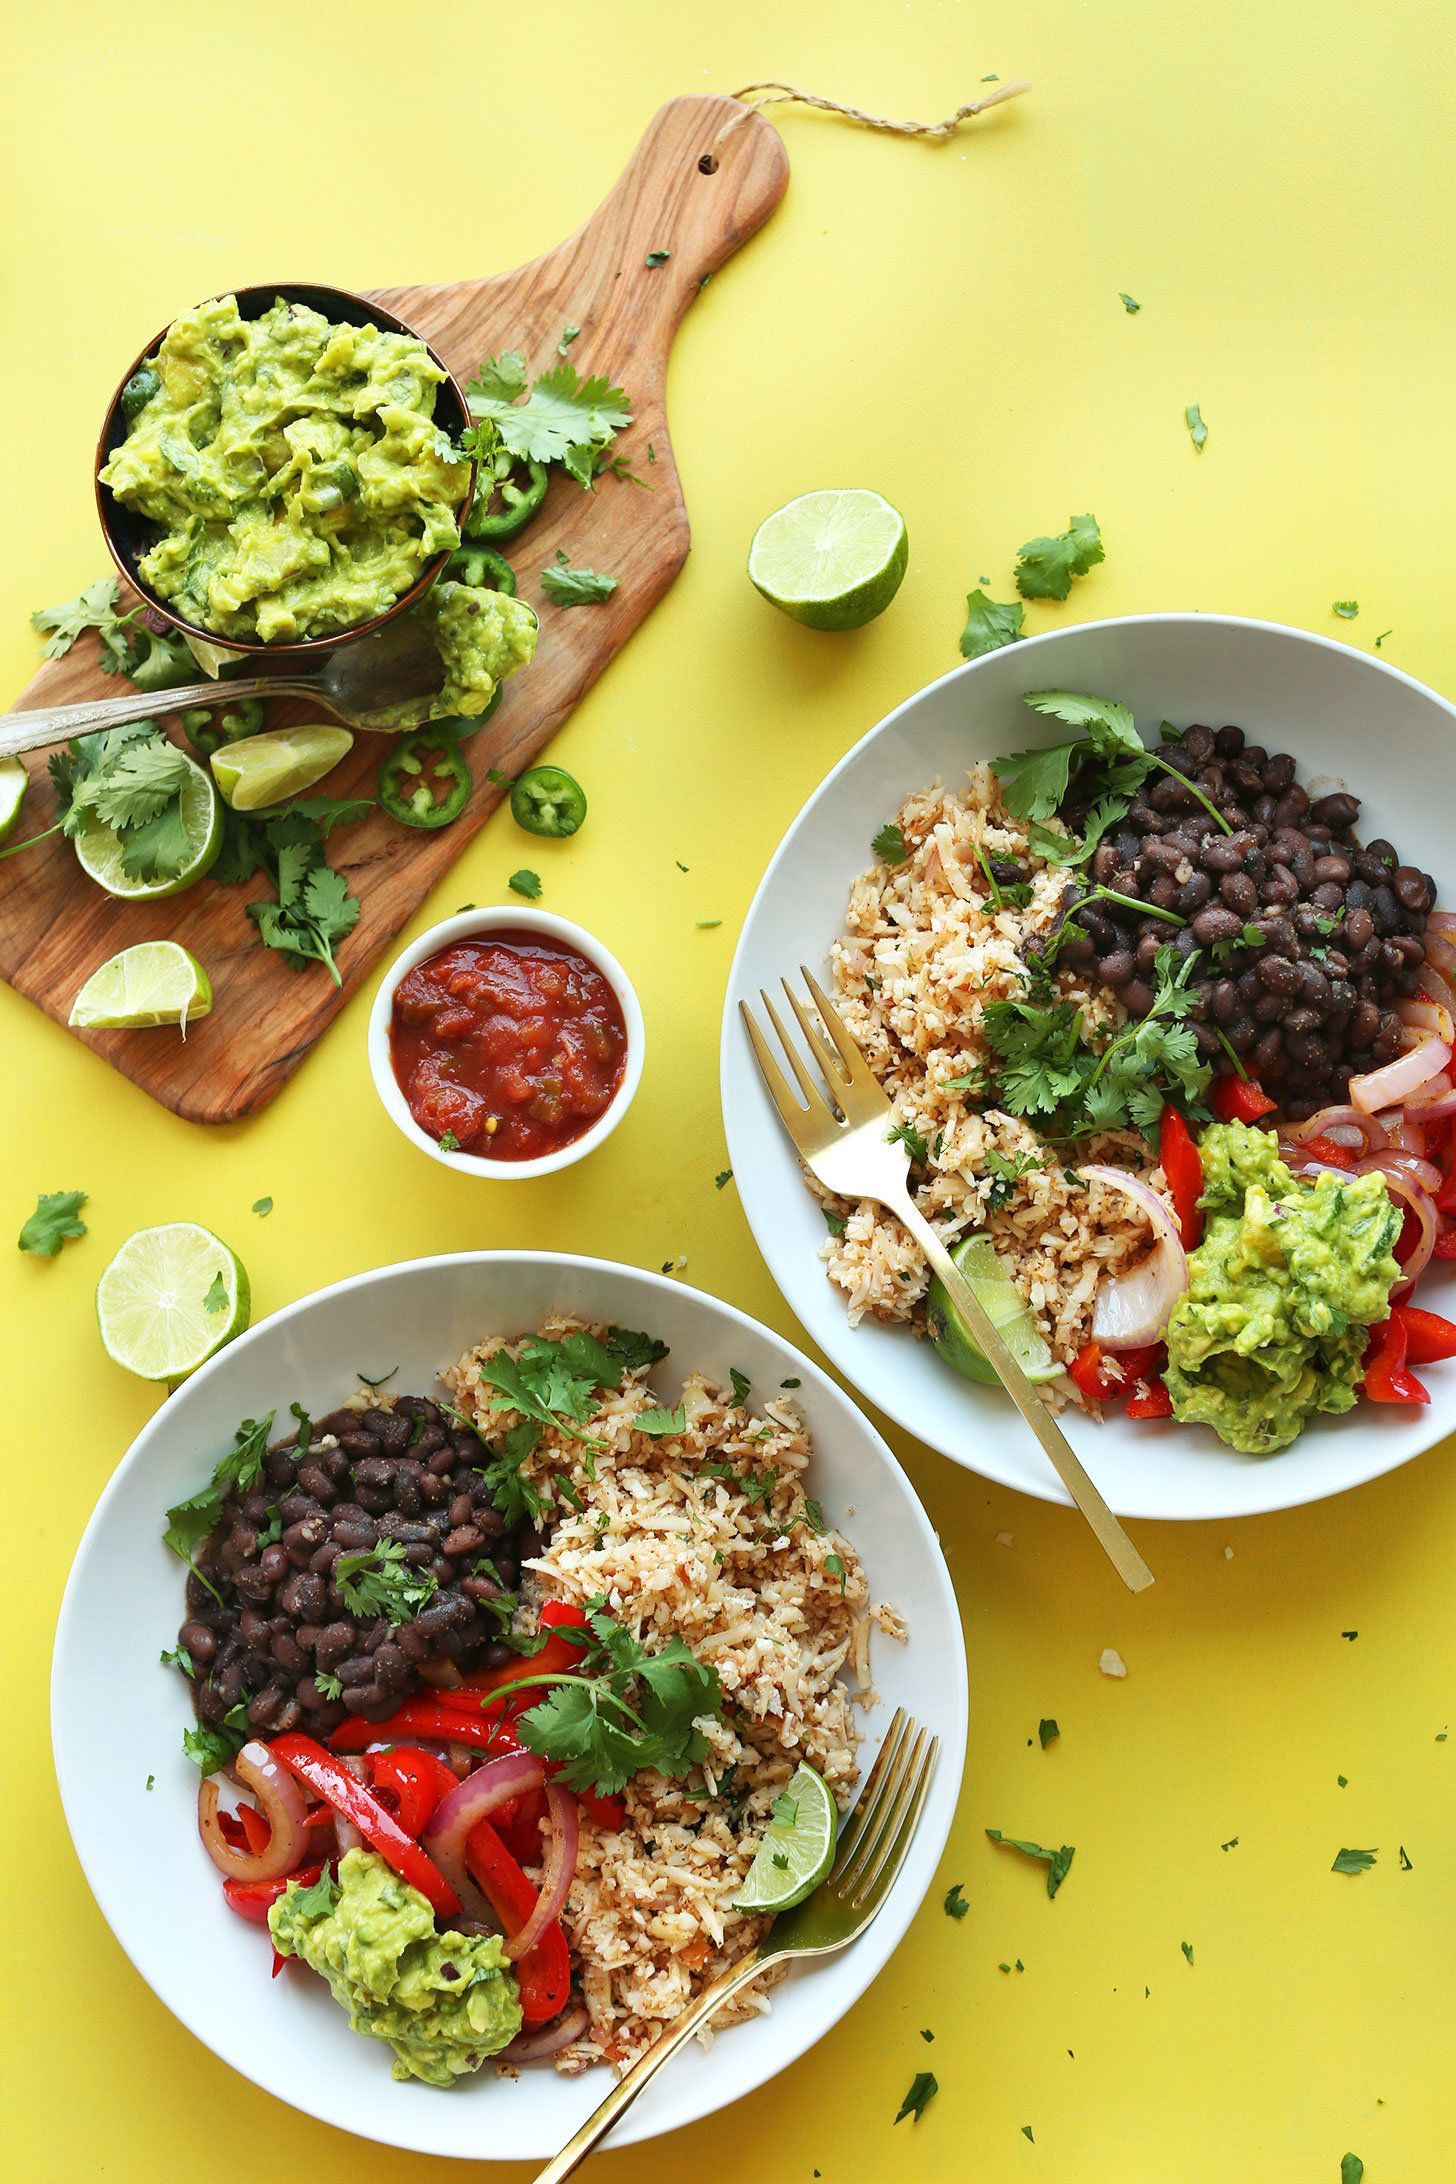 "<strong>Get the <a href=""http://minimalistbaker.com/cauliflower-rice-burrito-bowl/"" target=""_blank"">Cauliflower Rice Burrito"